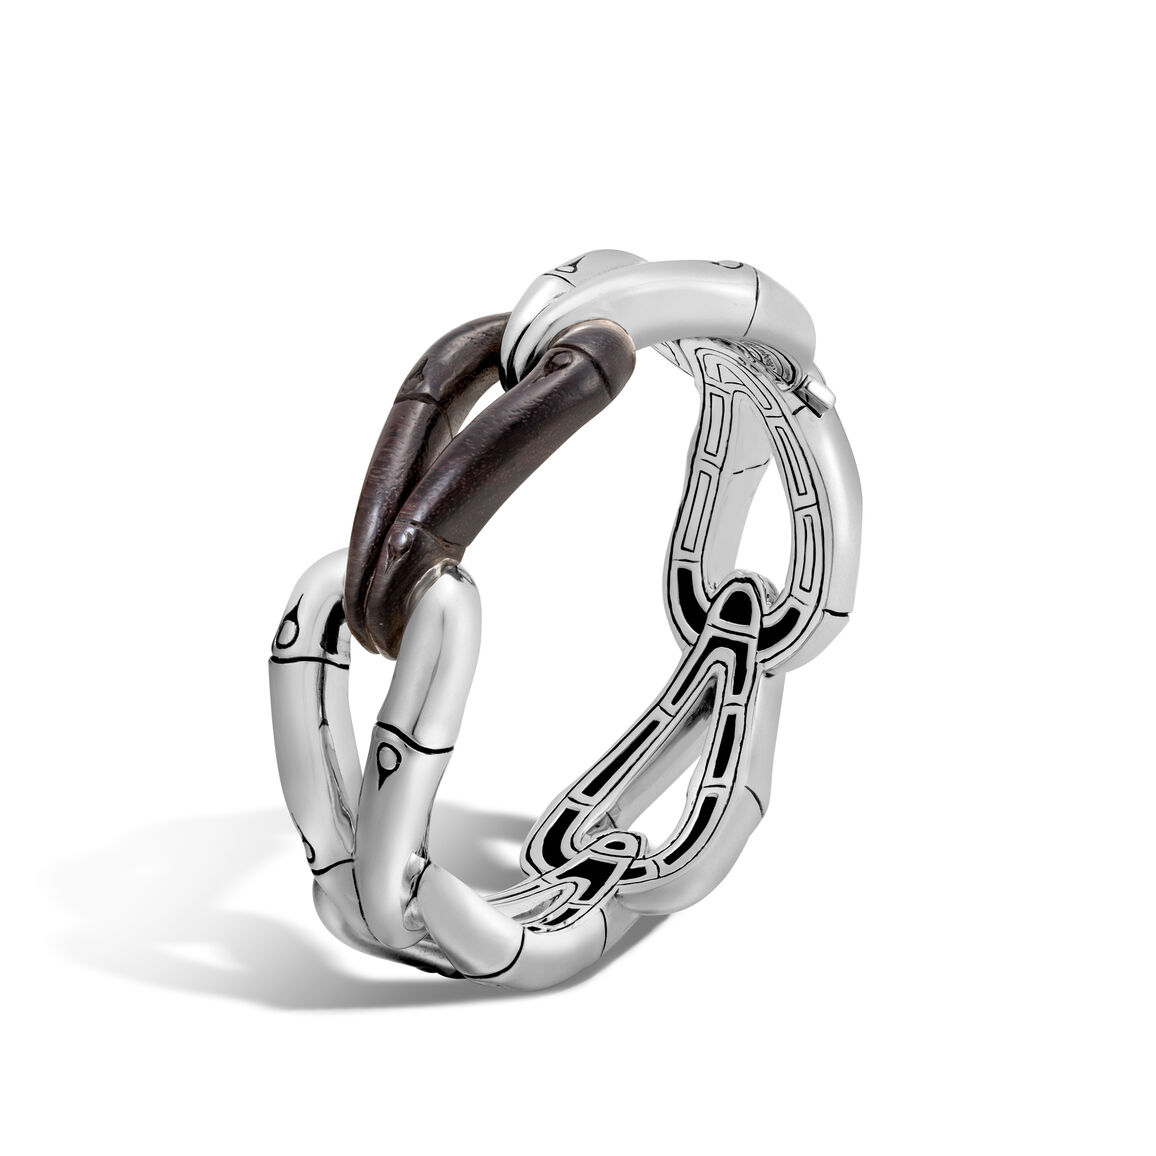 Bamboo 23MM Hinged Bangle in Silver